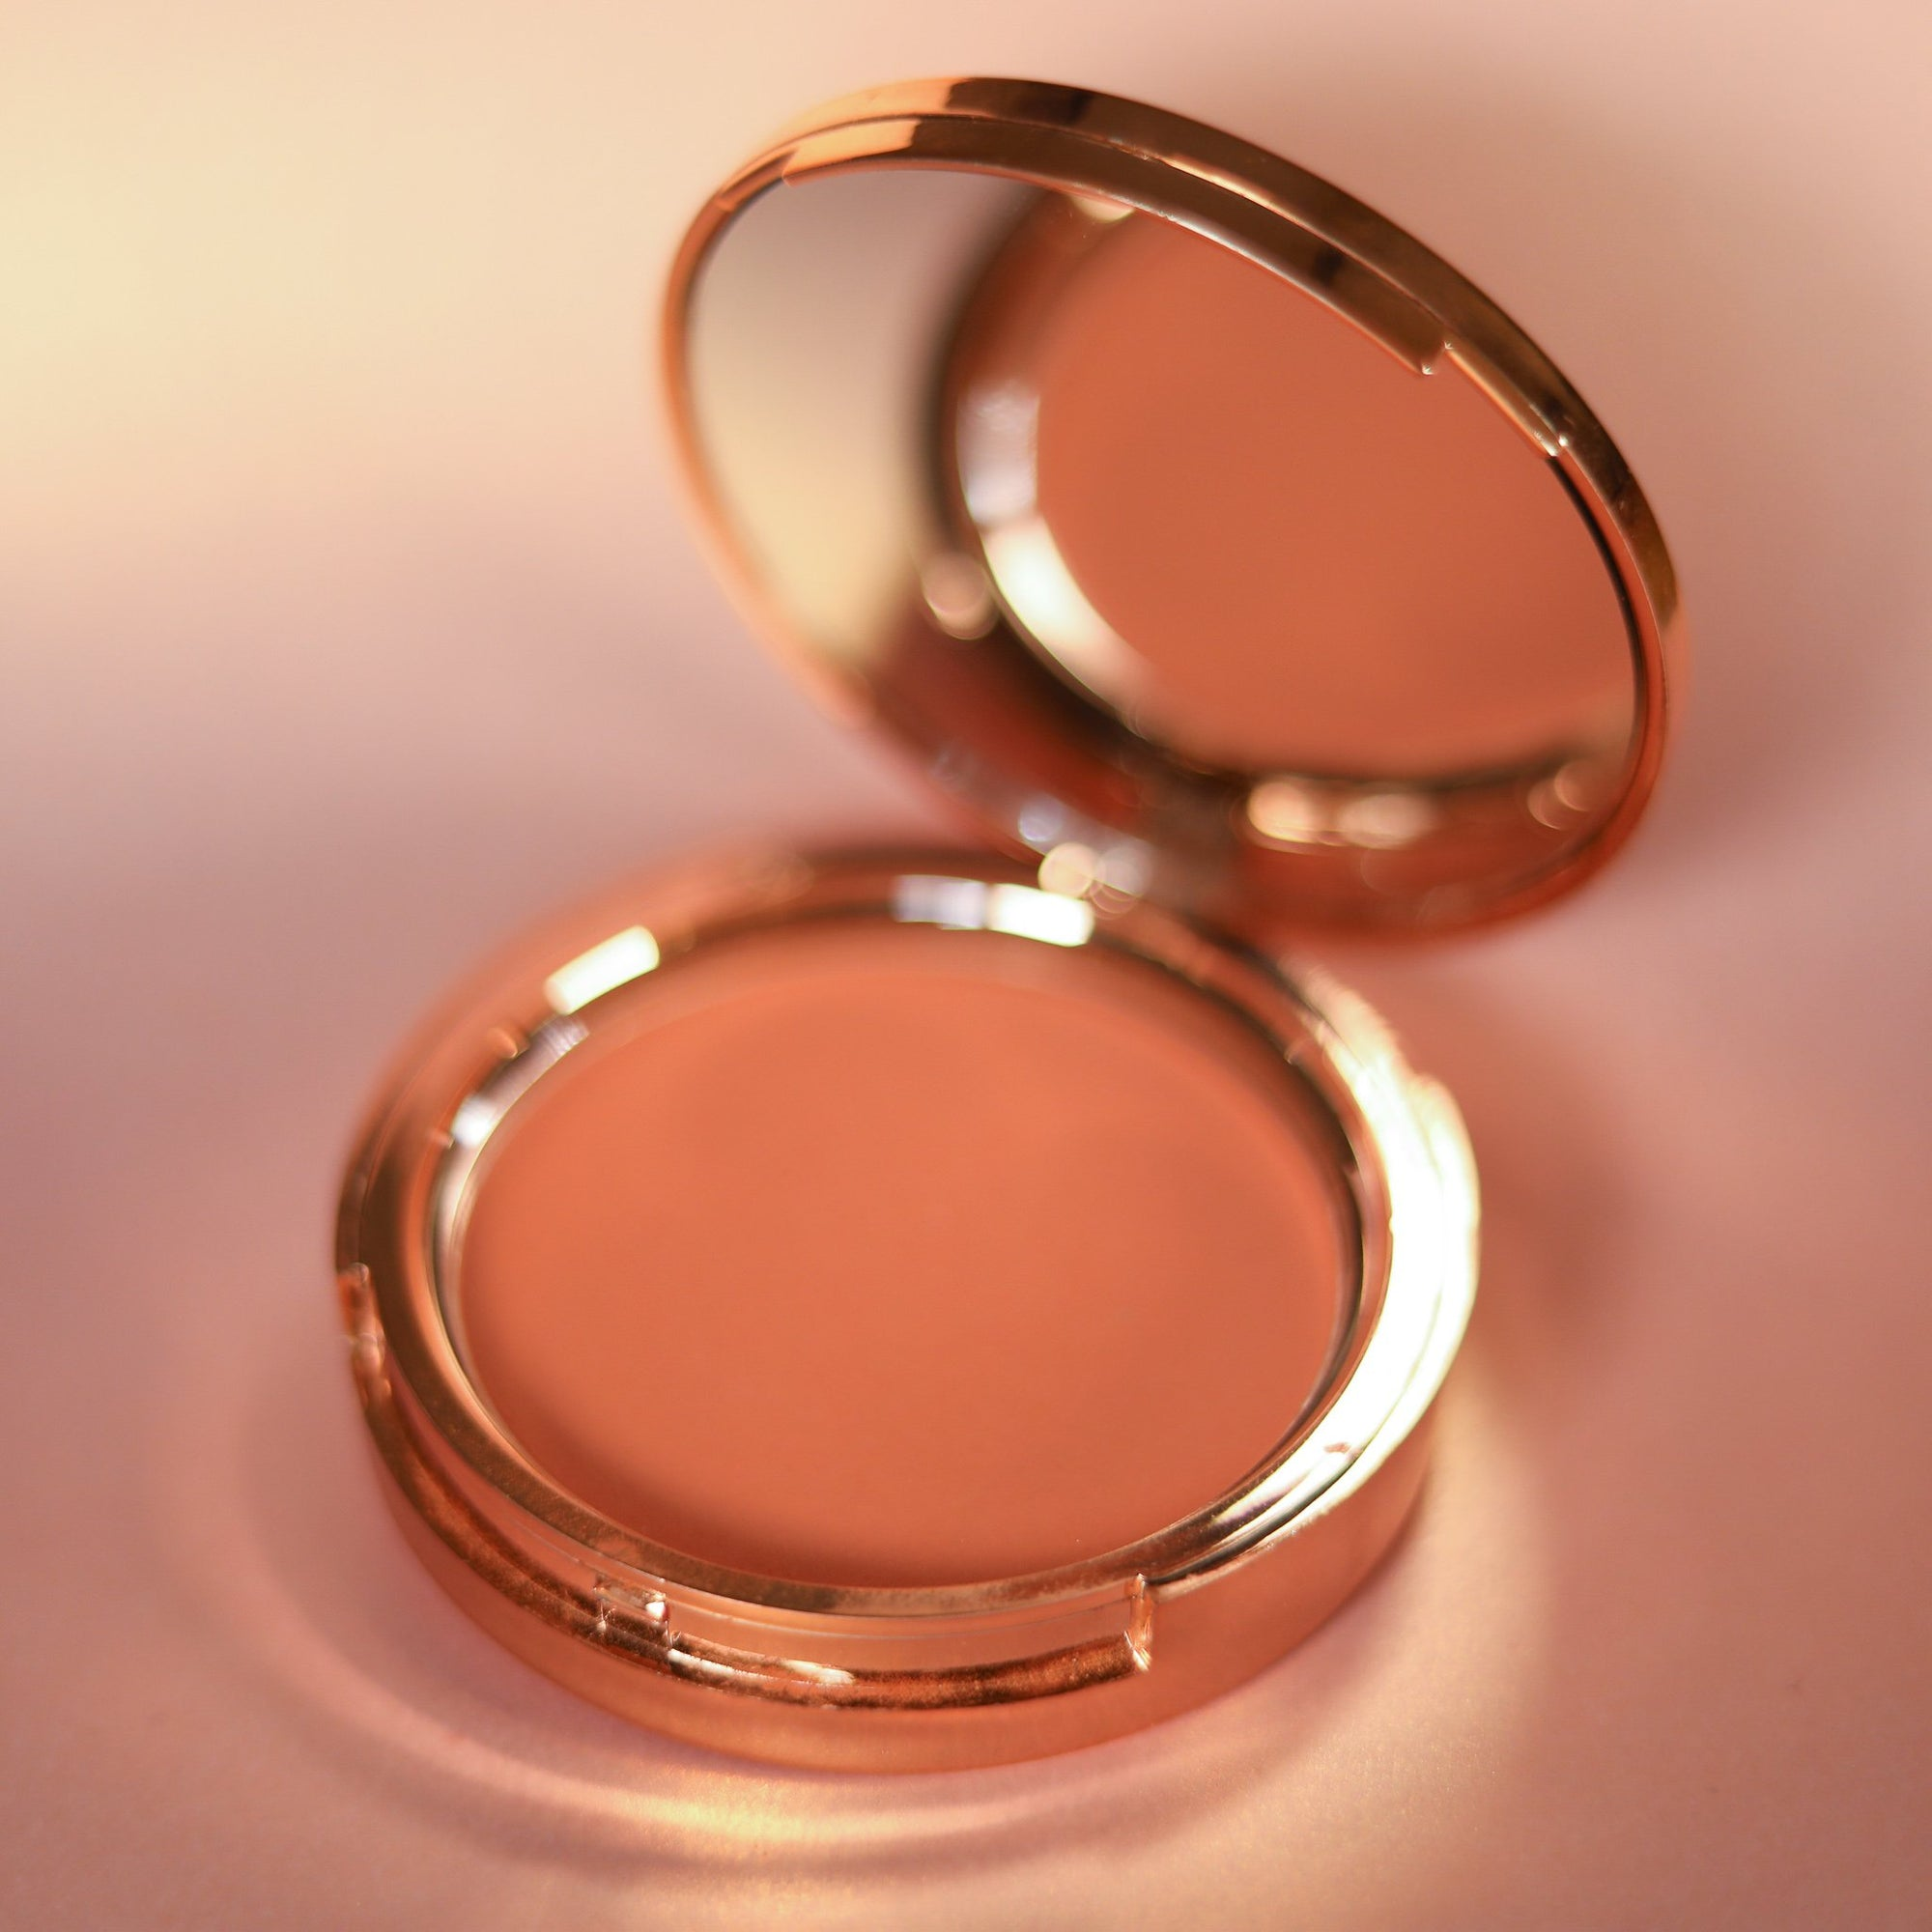 Second Skin Powder Blush - Shade: Flushed - Jolie Beauty